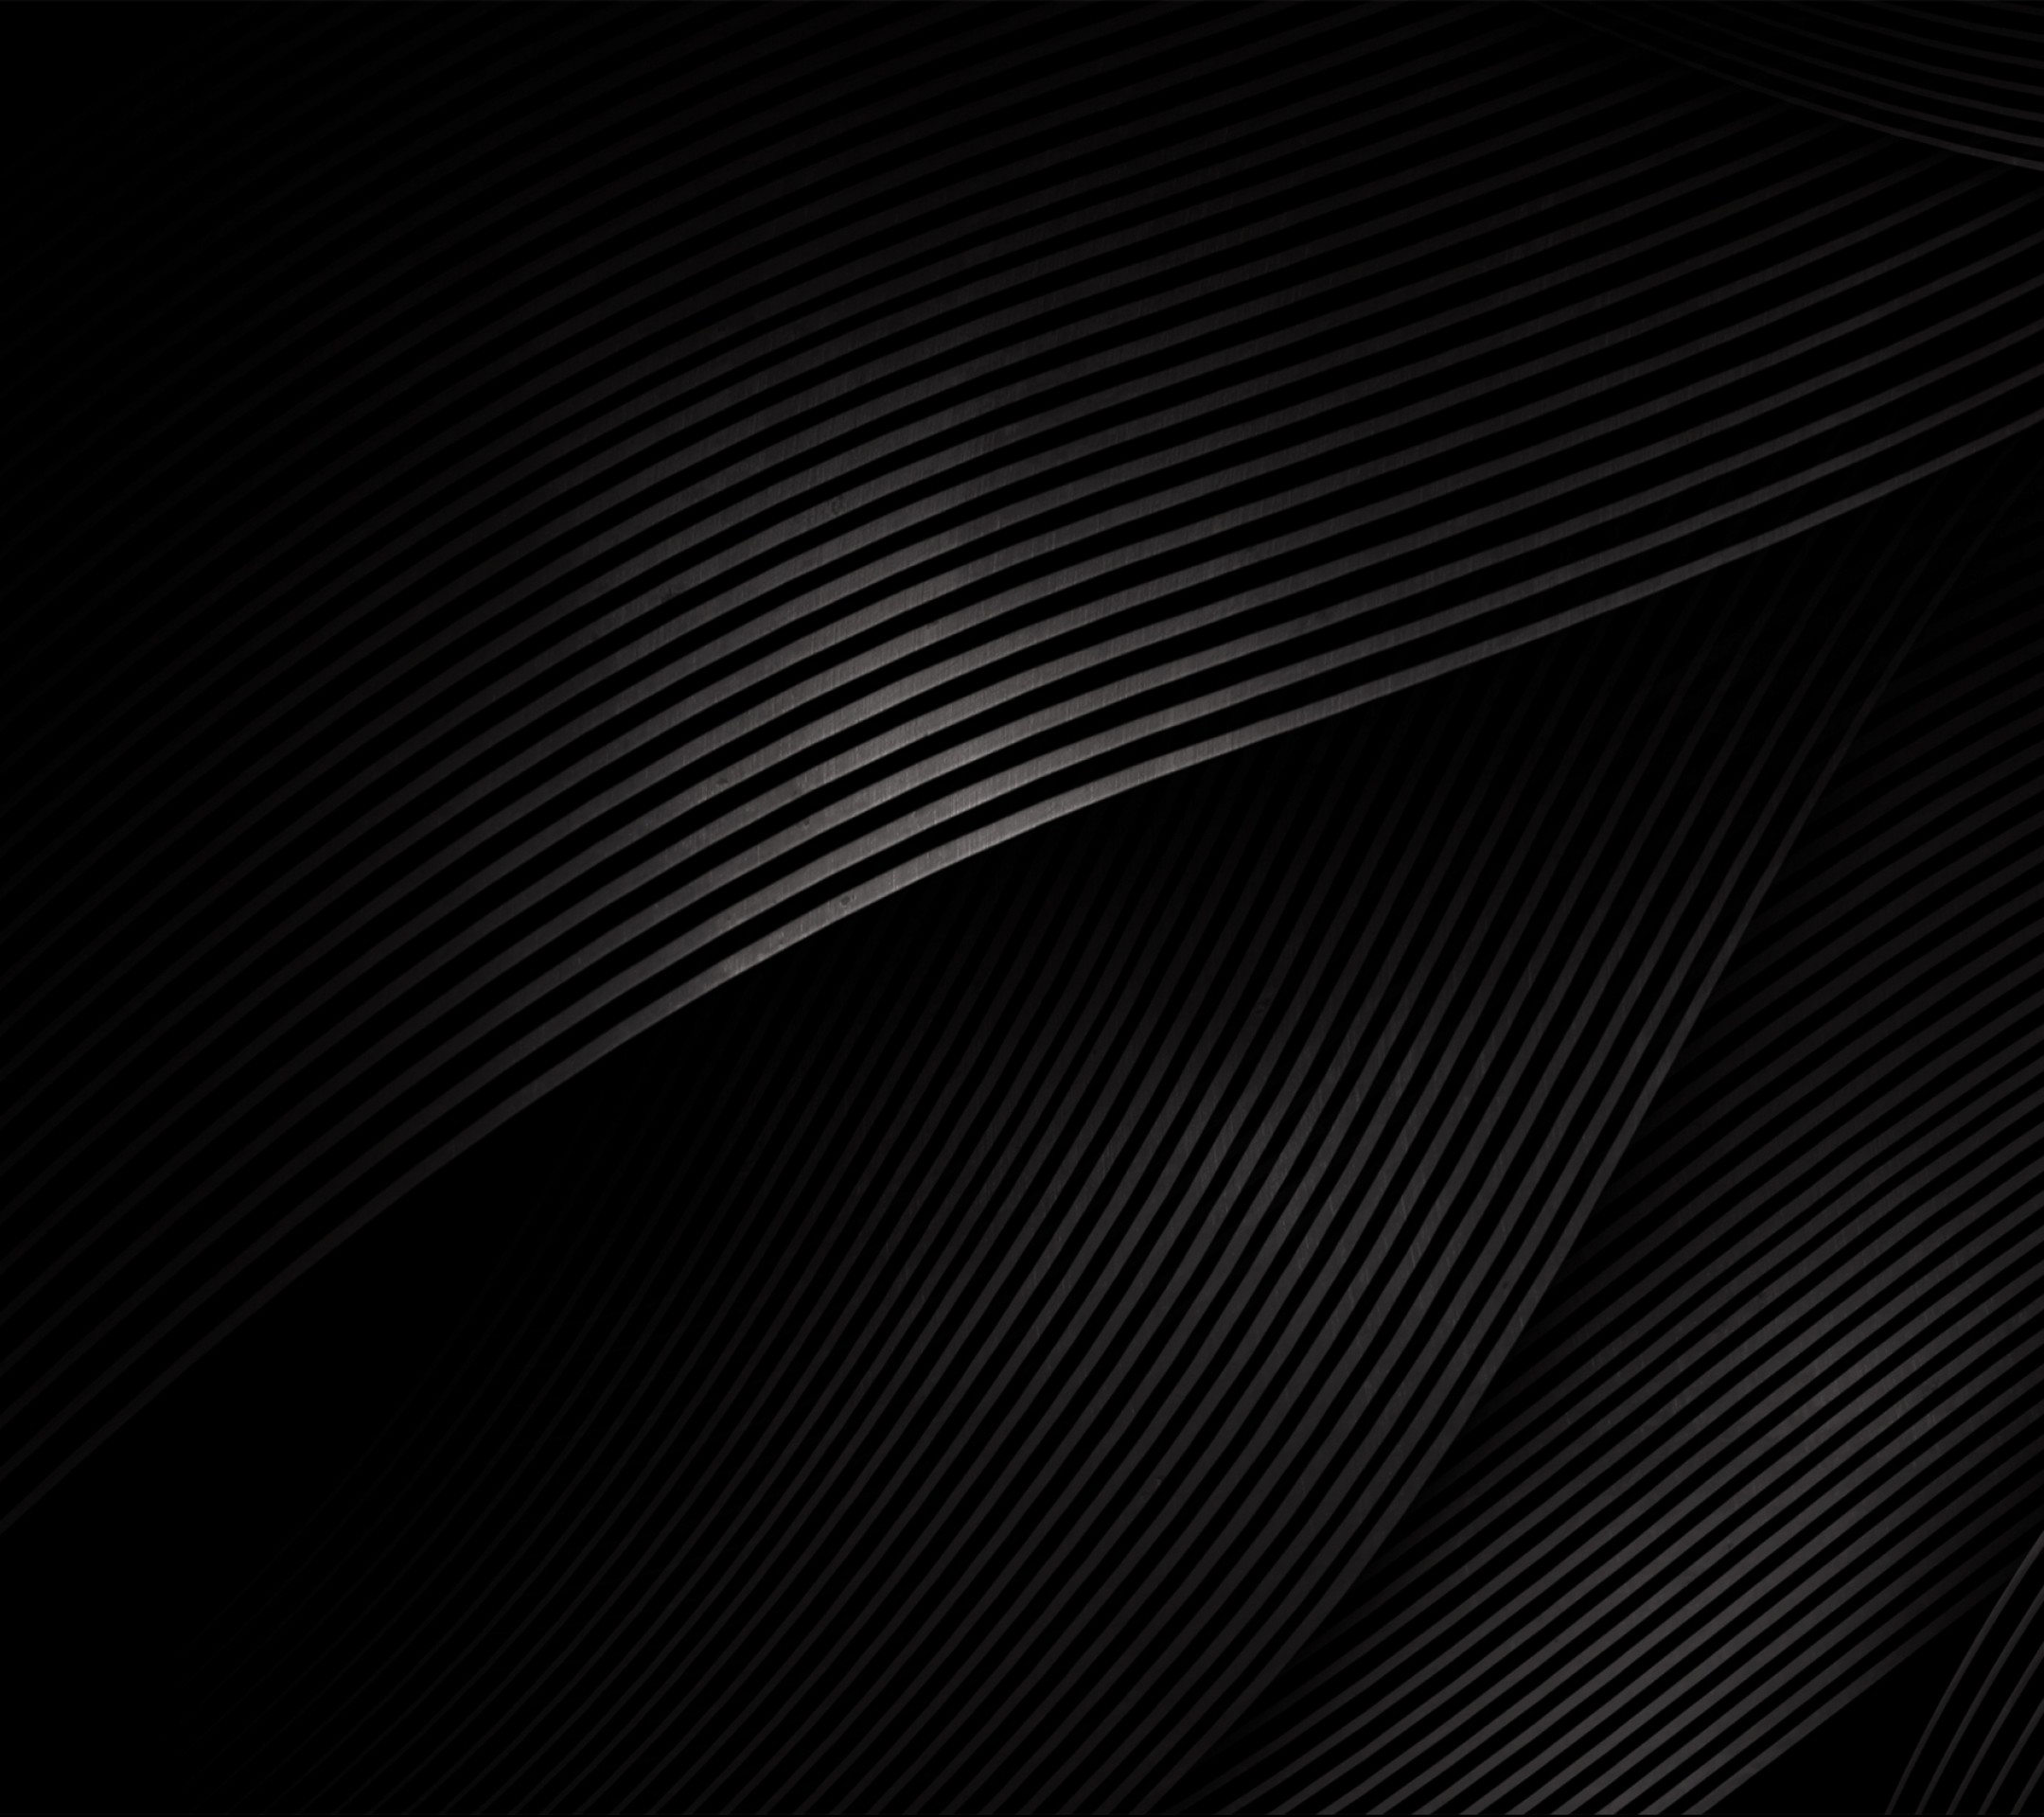 1920x1200 Hd Wallpapers Abstract Black 17 High Resolution Wallpaper